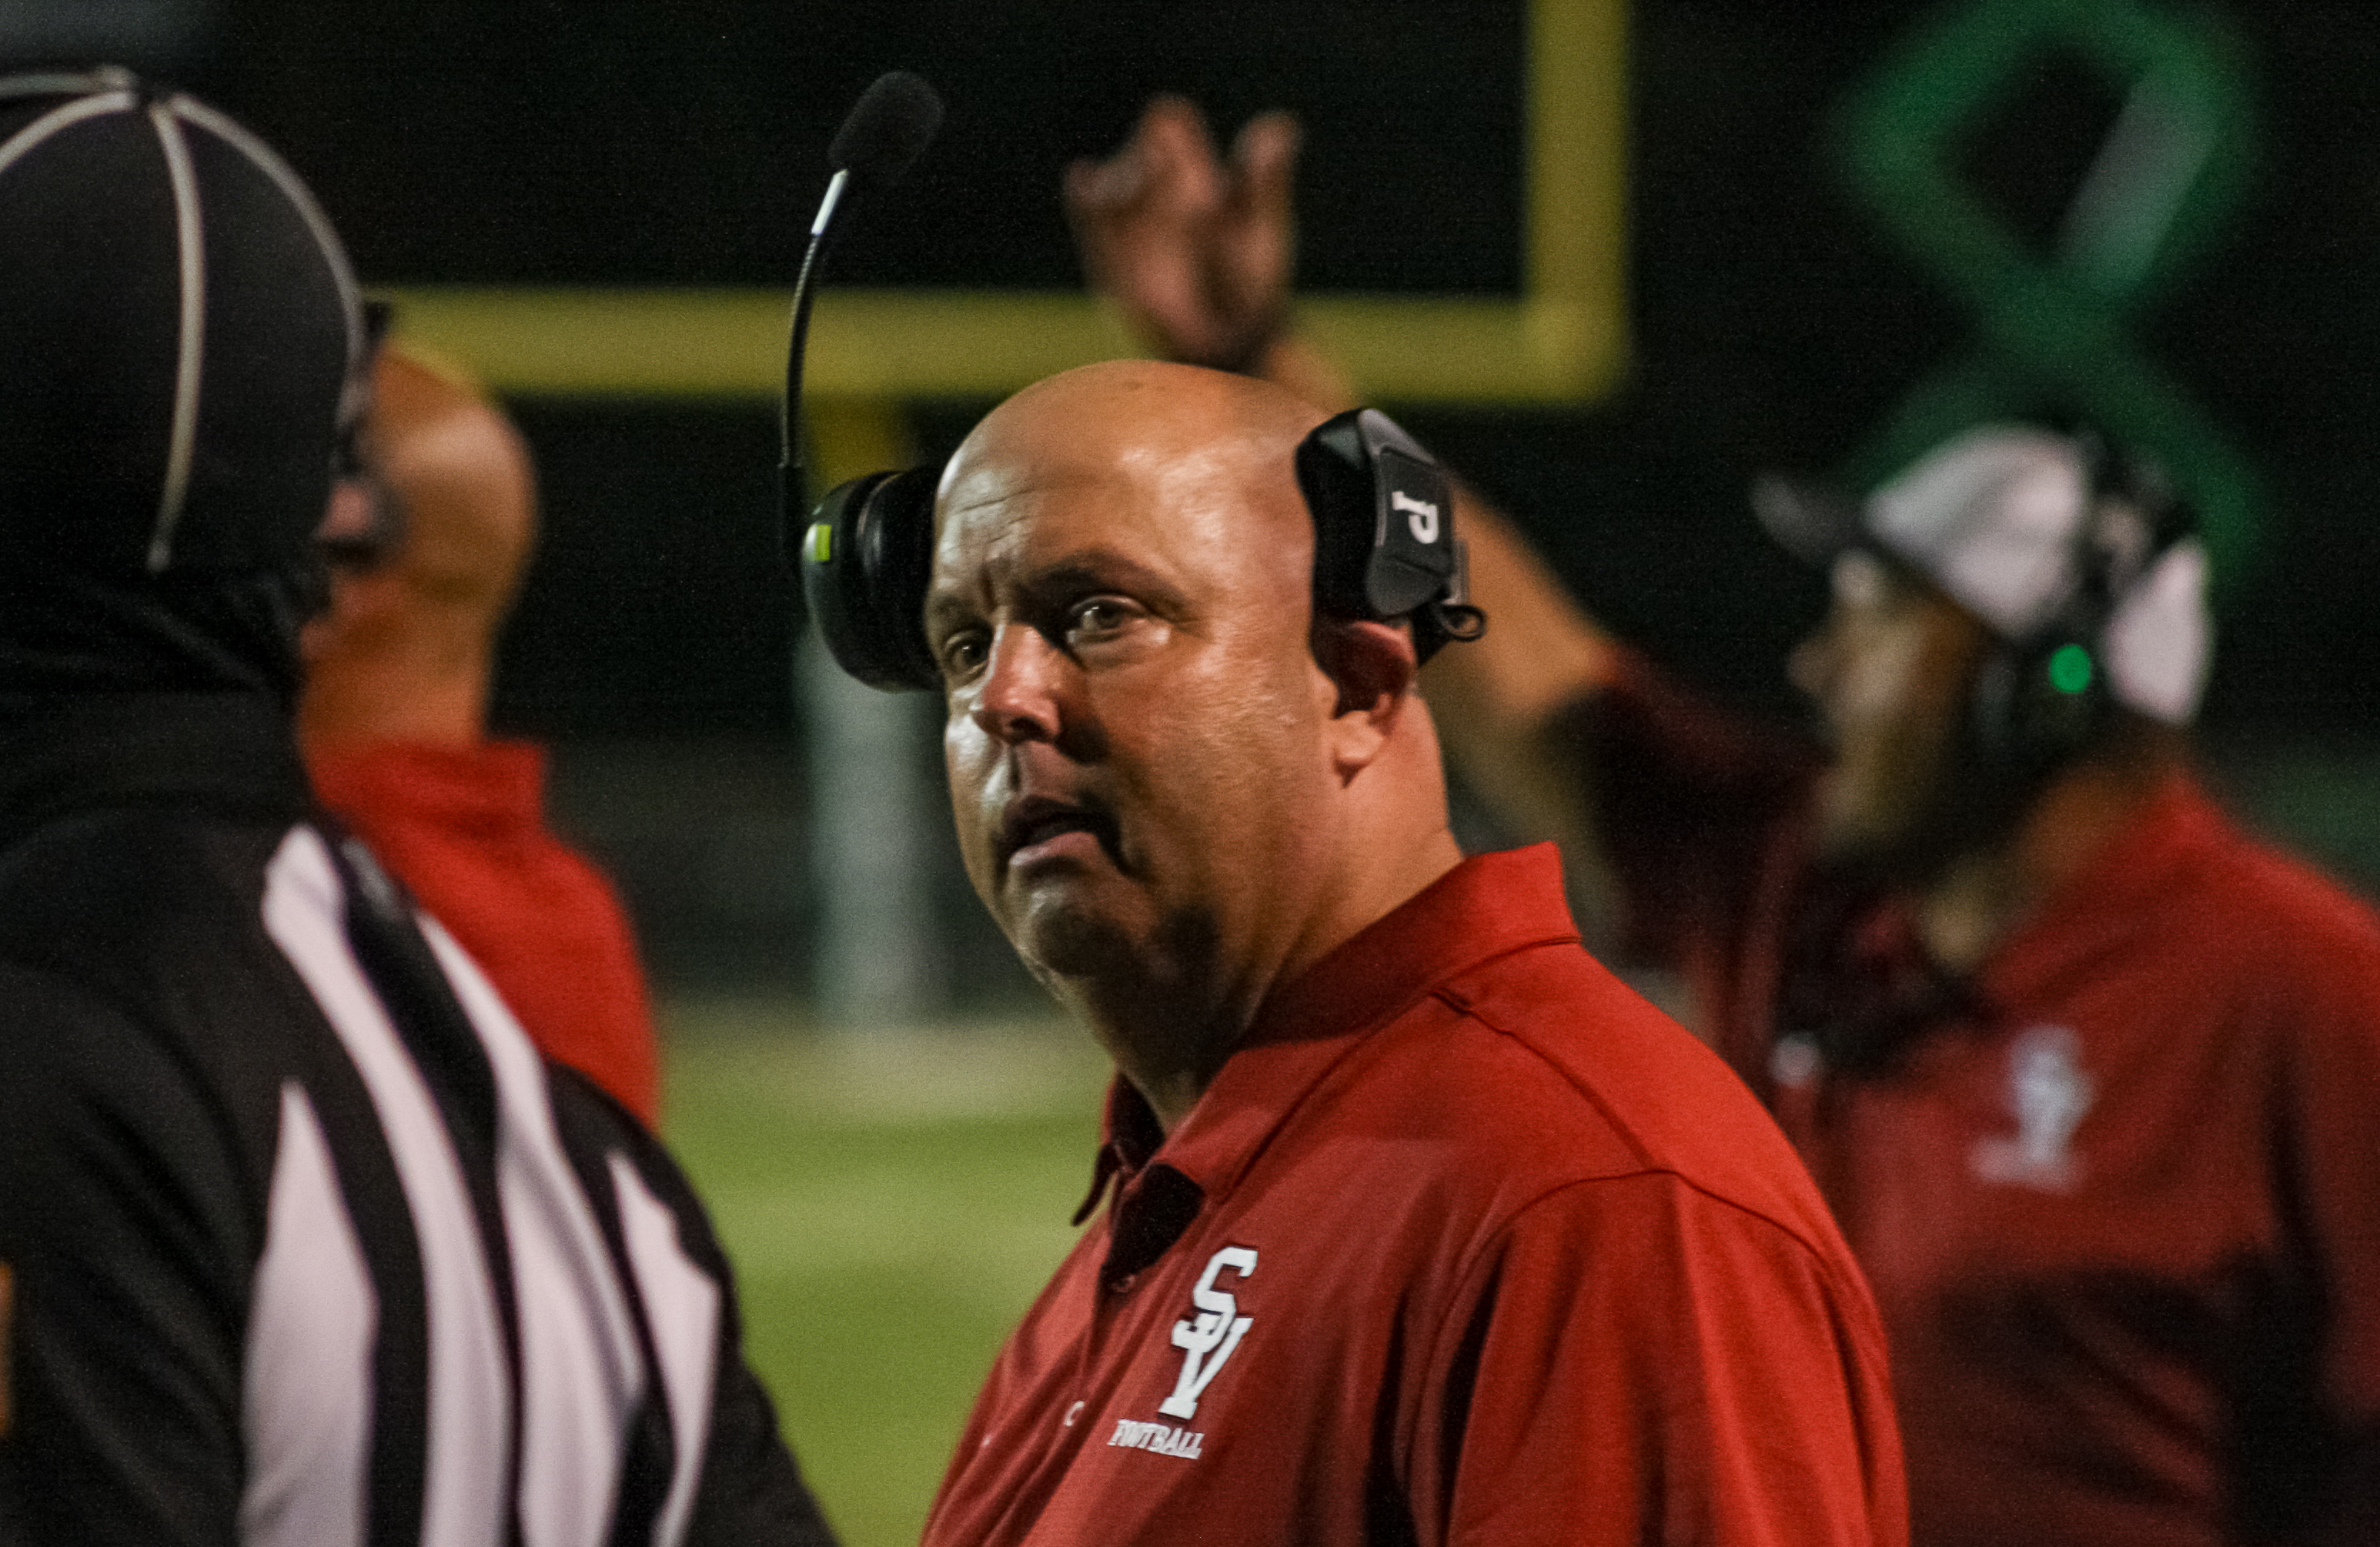 Jamie Mitchell is leaving Shades Valley for Hillcrest-Tuscaloosa